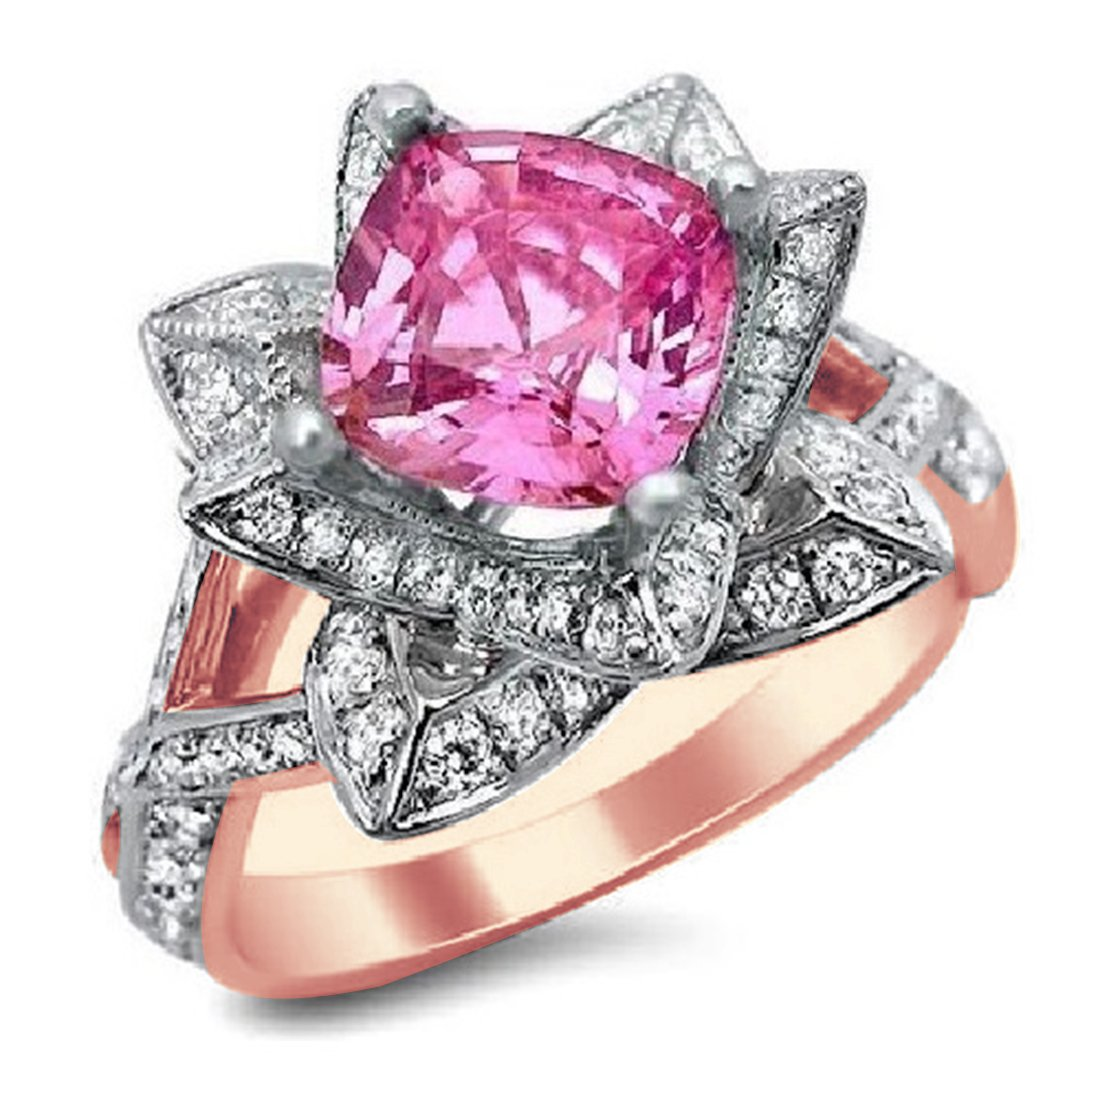 Smjewels 2.05 Ct Cushion Cut Pink Sapphire & Sim.Diamond Lotus Flower Ring In 14K Rose Gold Fn